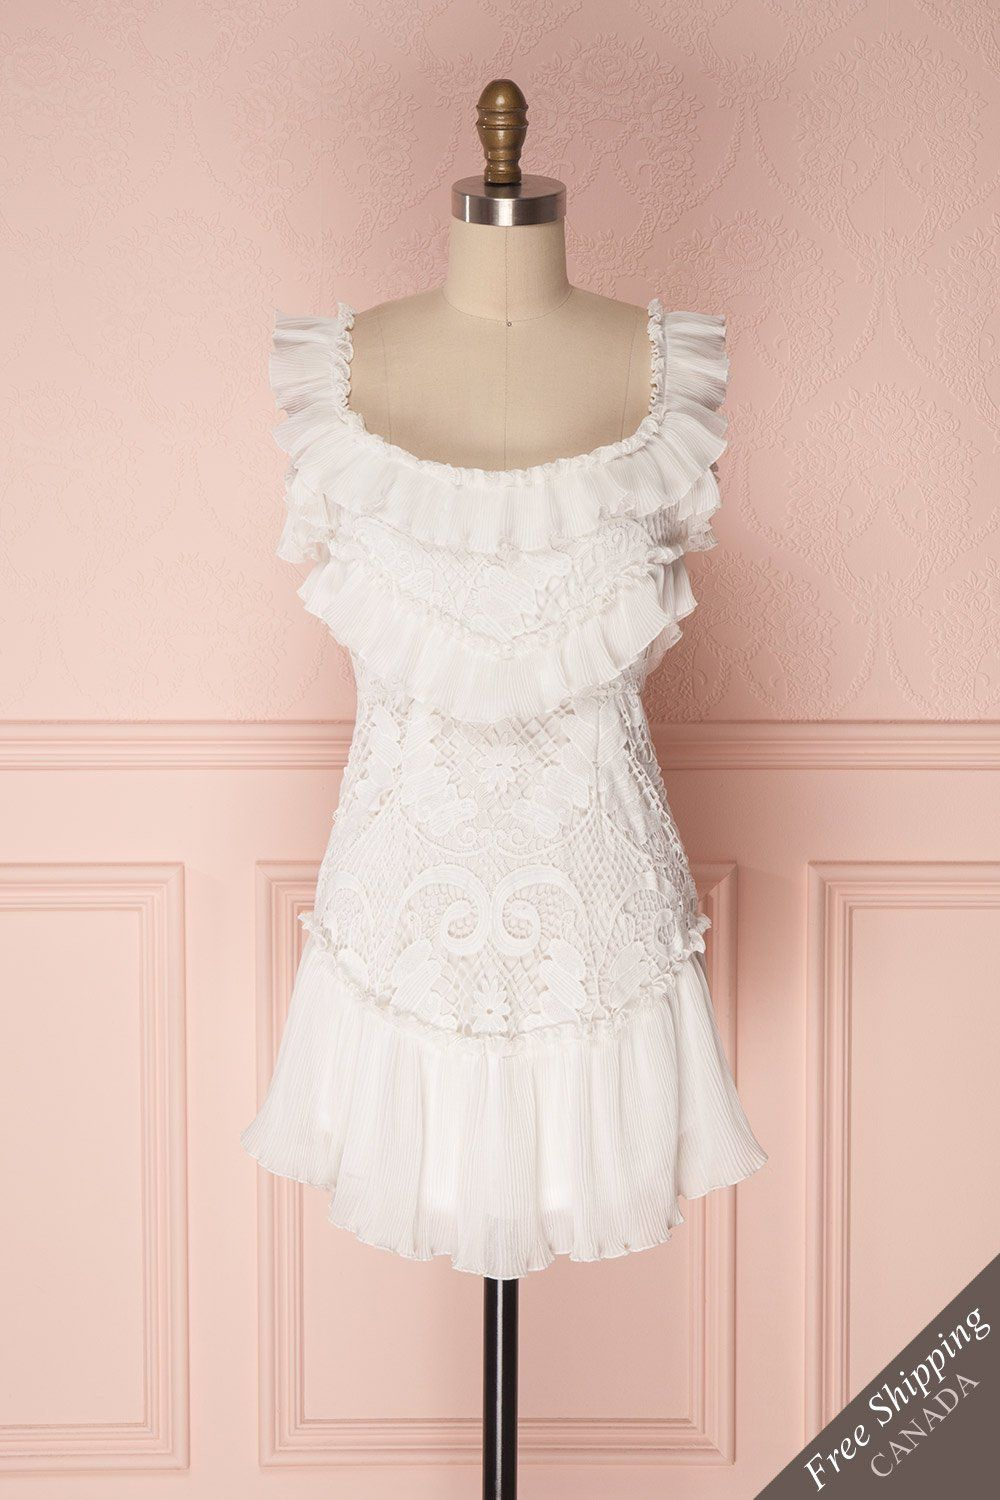 Totam in shoes pinterest dresses ruffle dress and white lace